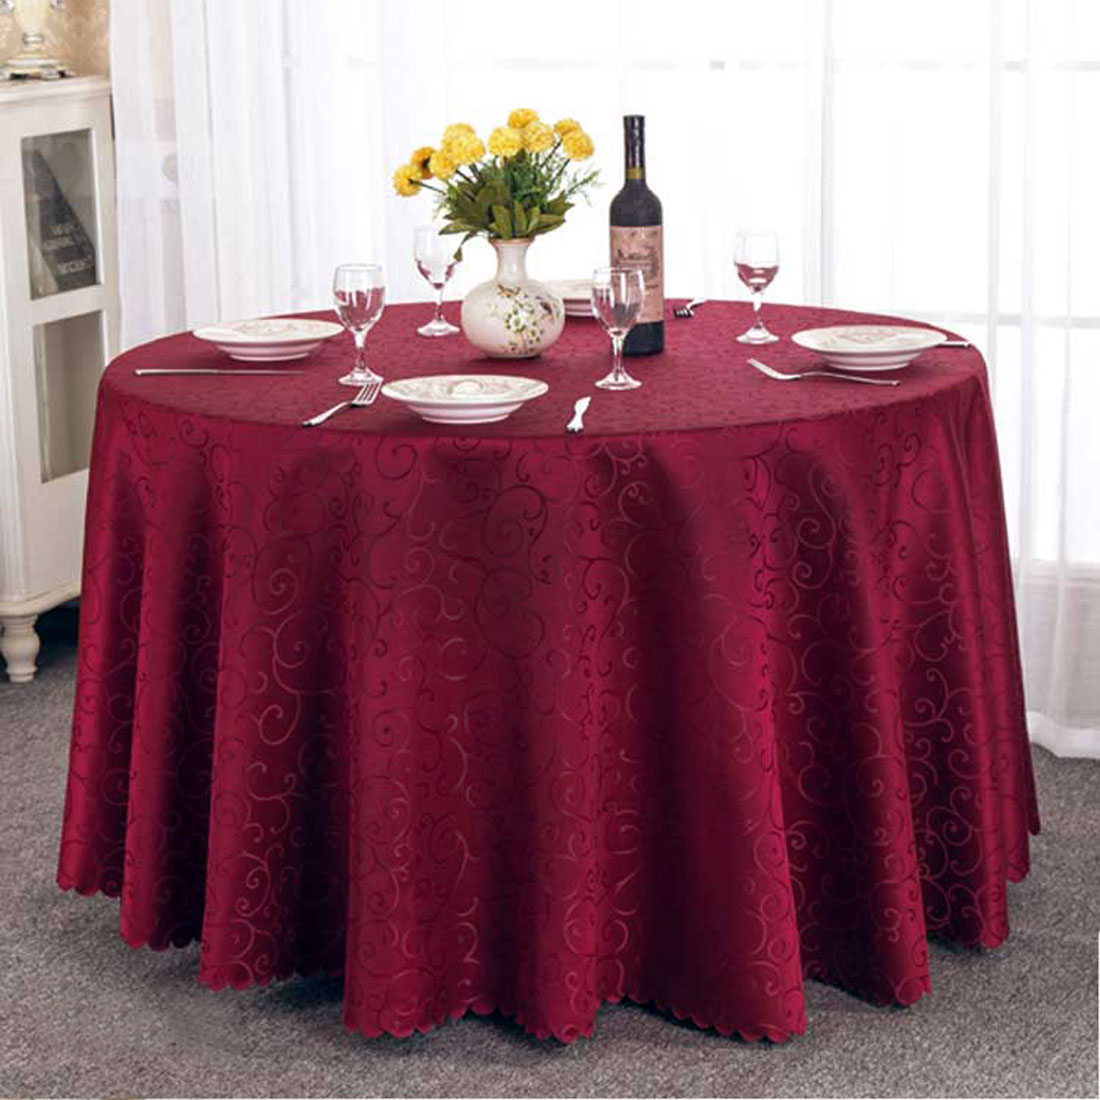 UXCELL Hotel Restaurant Polyester Round Flower Pattern Tablecloth Table  Cloth Cover Dark Red 1.8M Diameter